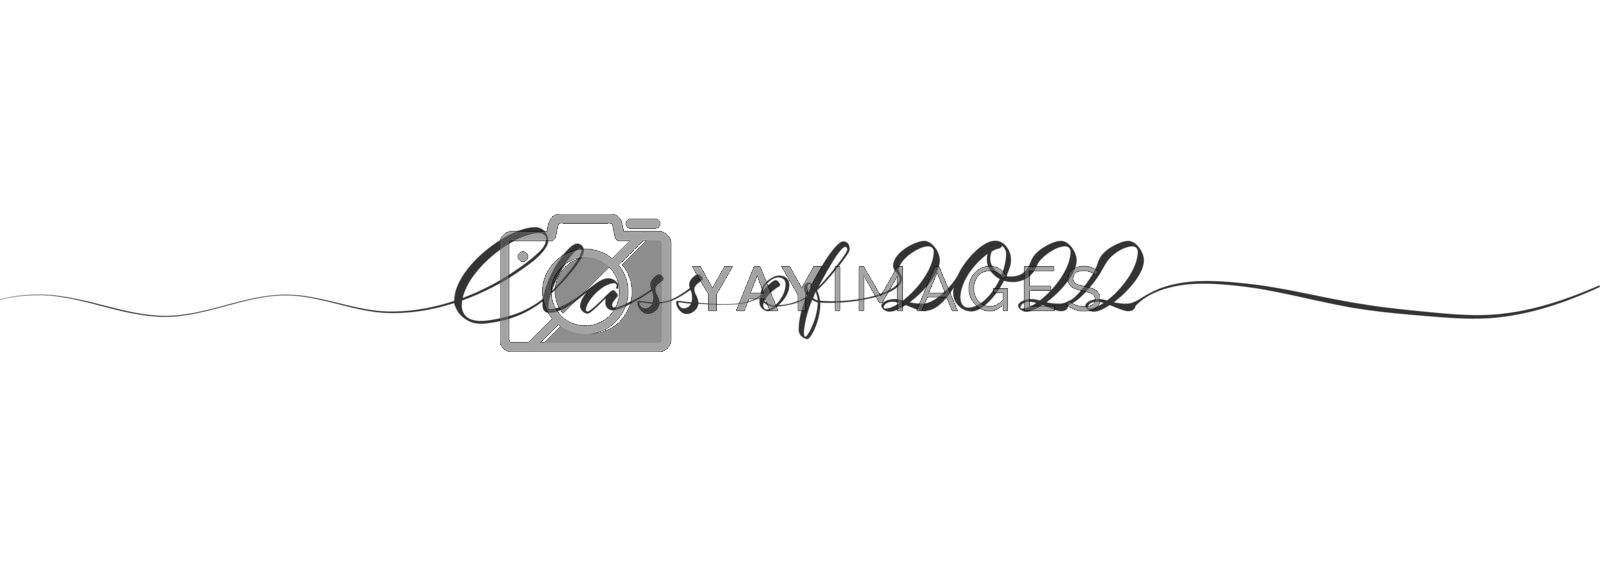 Stylized calligraphic inscription Class of 2022 in one line. Simple Style